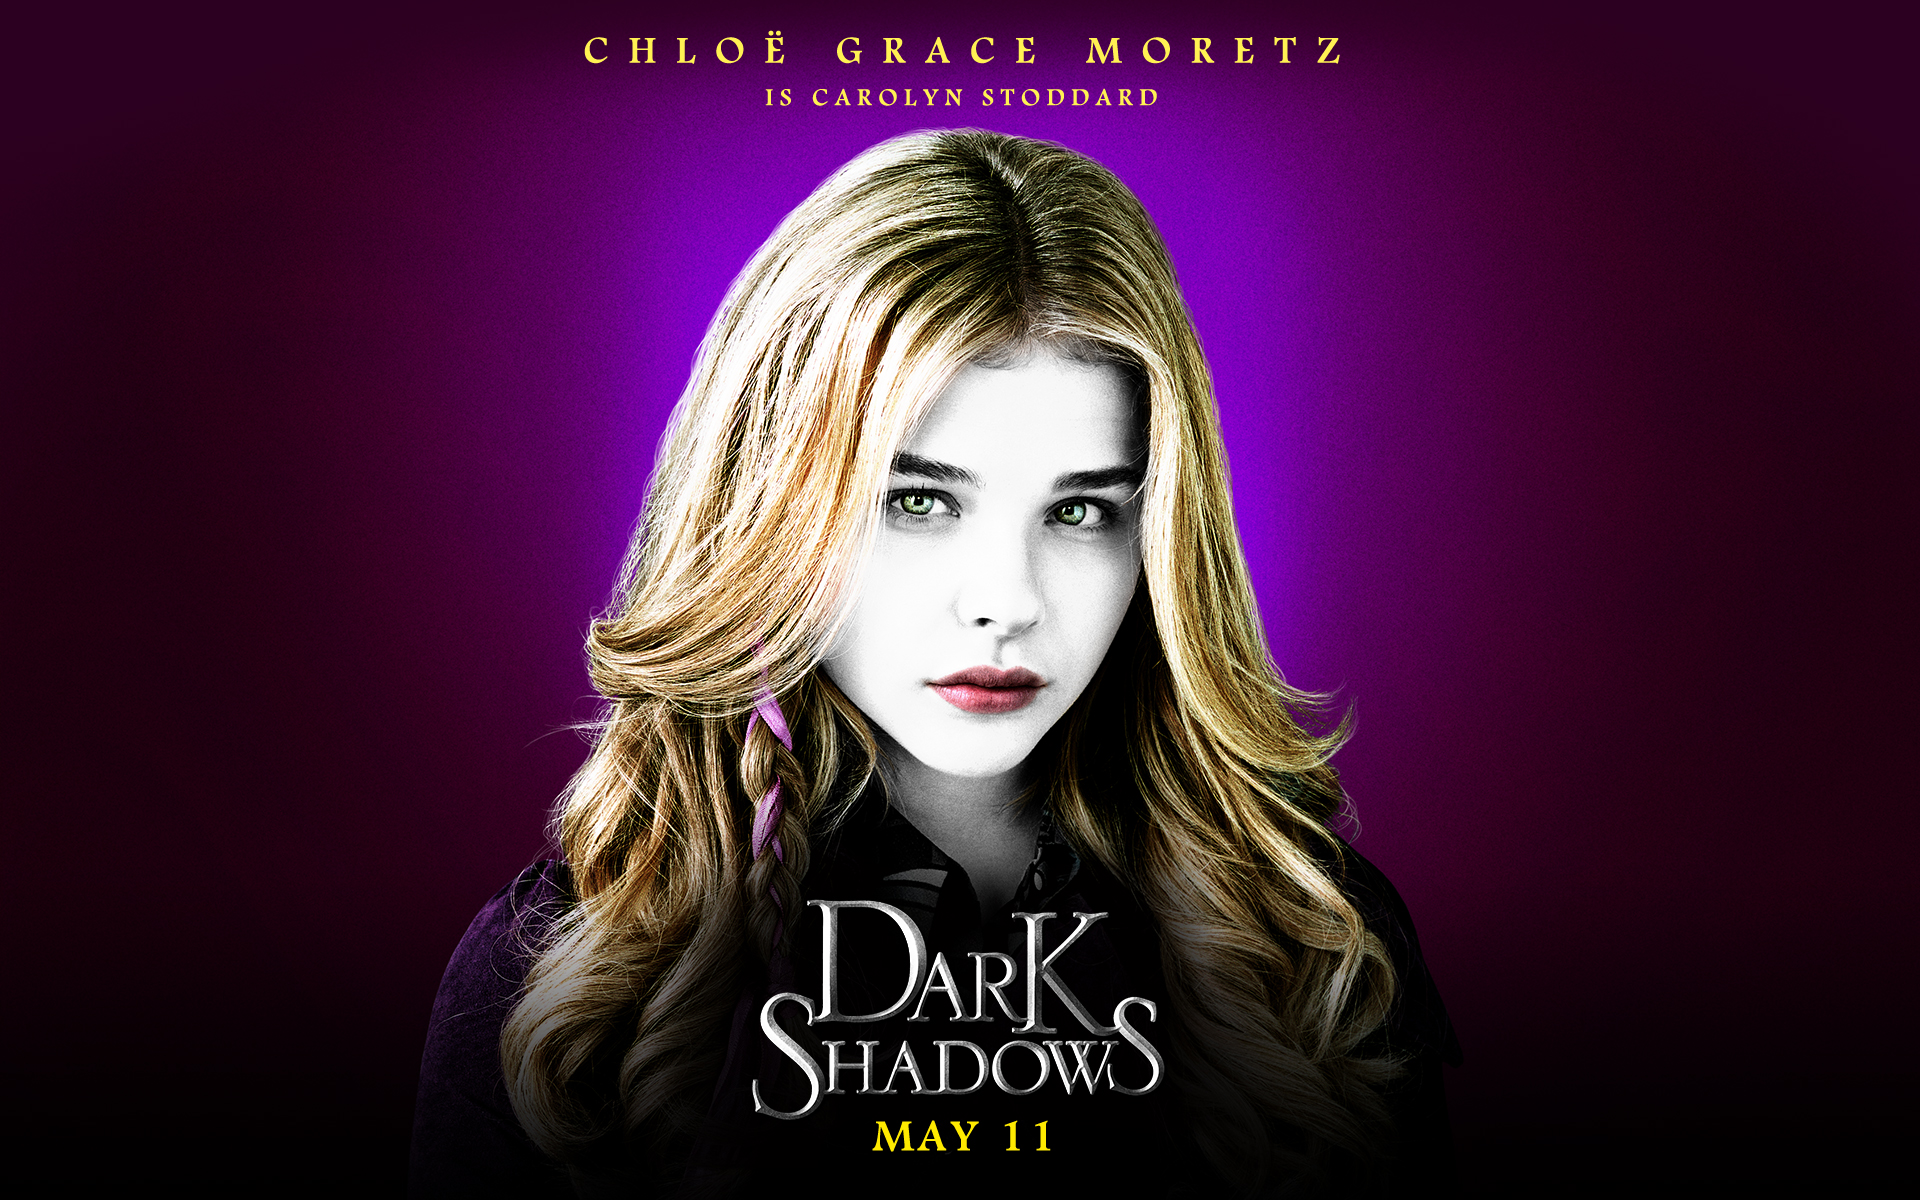 Dark Shadows wallpapers 19201200 Chloe Grace Moretz as Karolyn 1920x1200